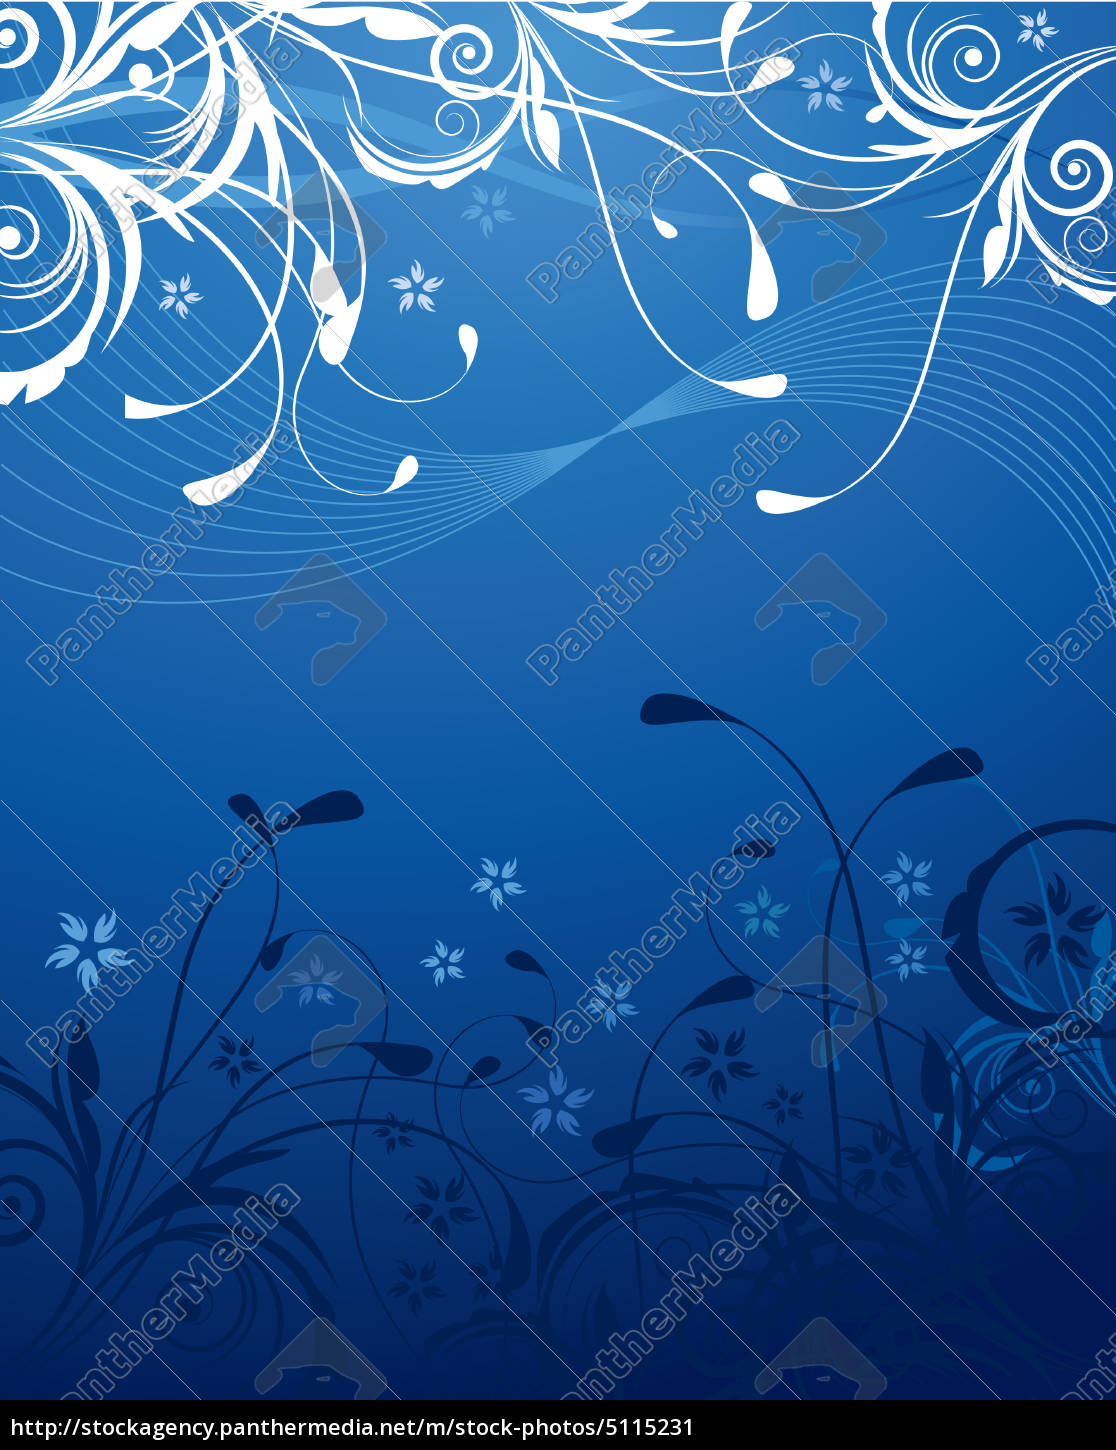 Blue Floral Background Royalty Free Image 5115231